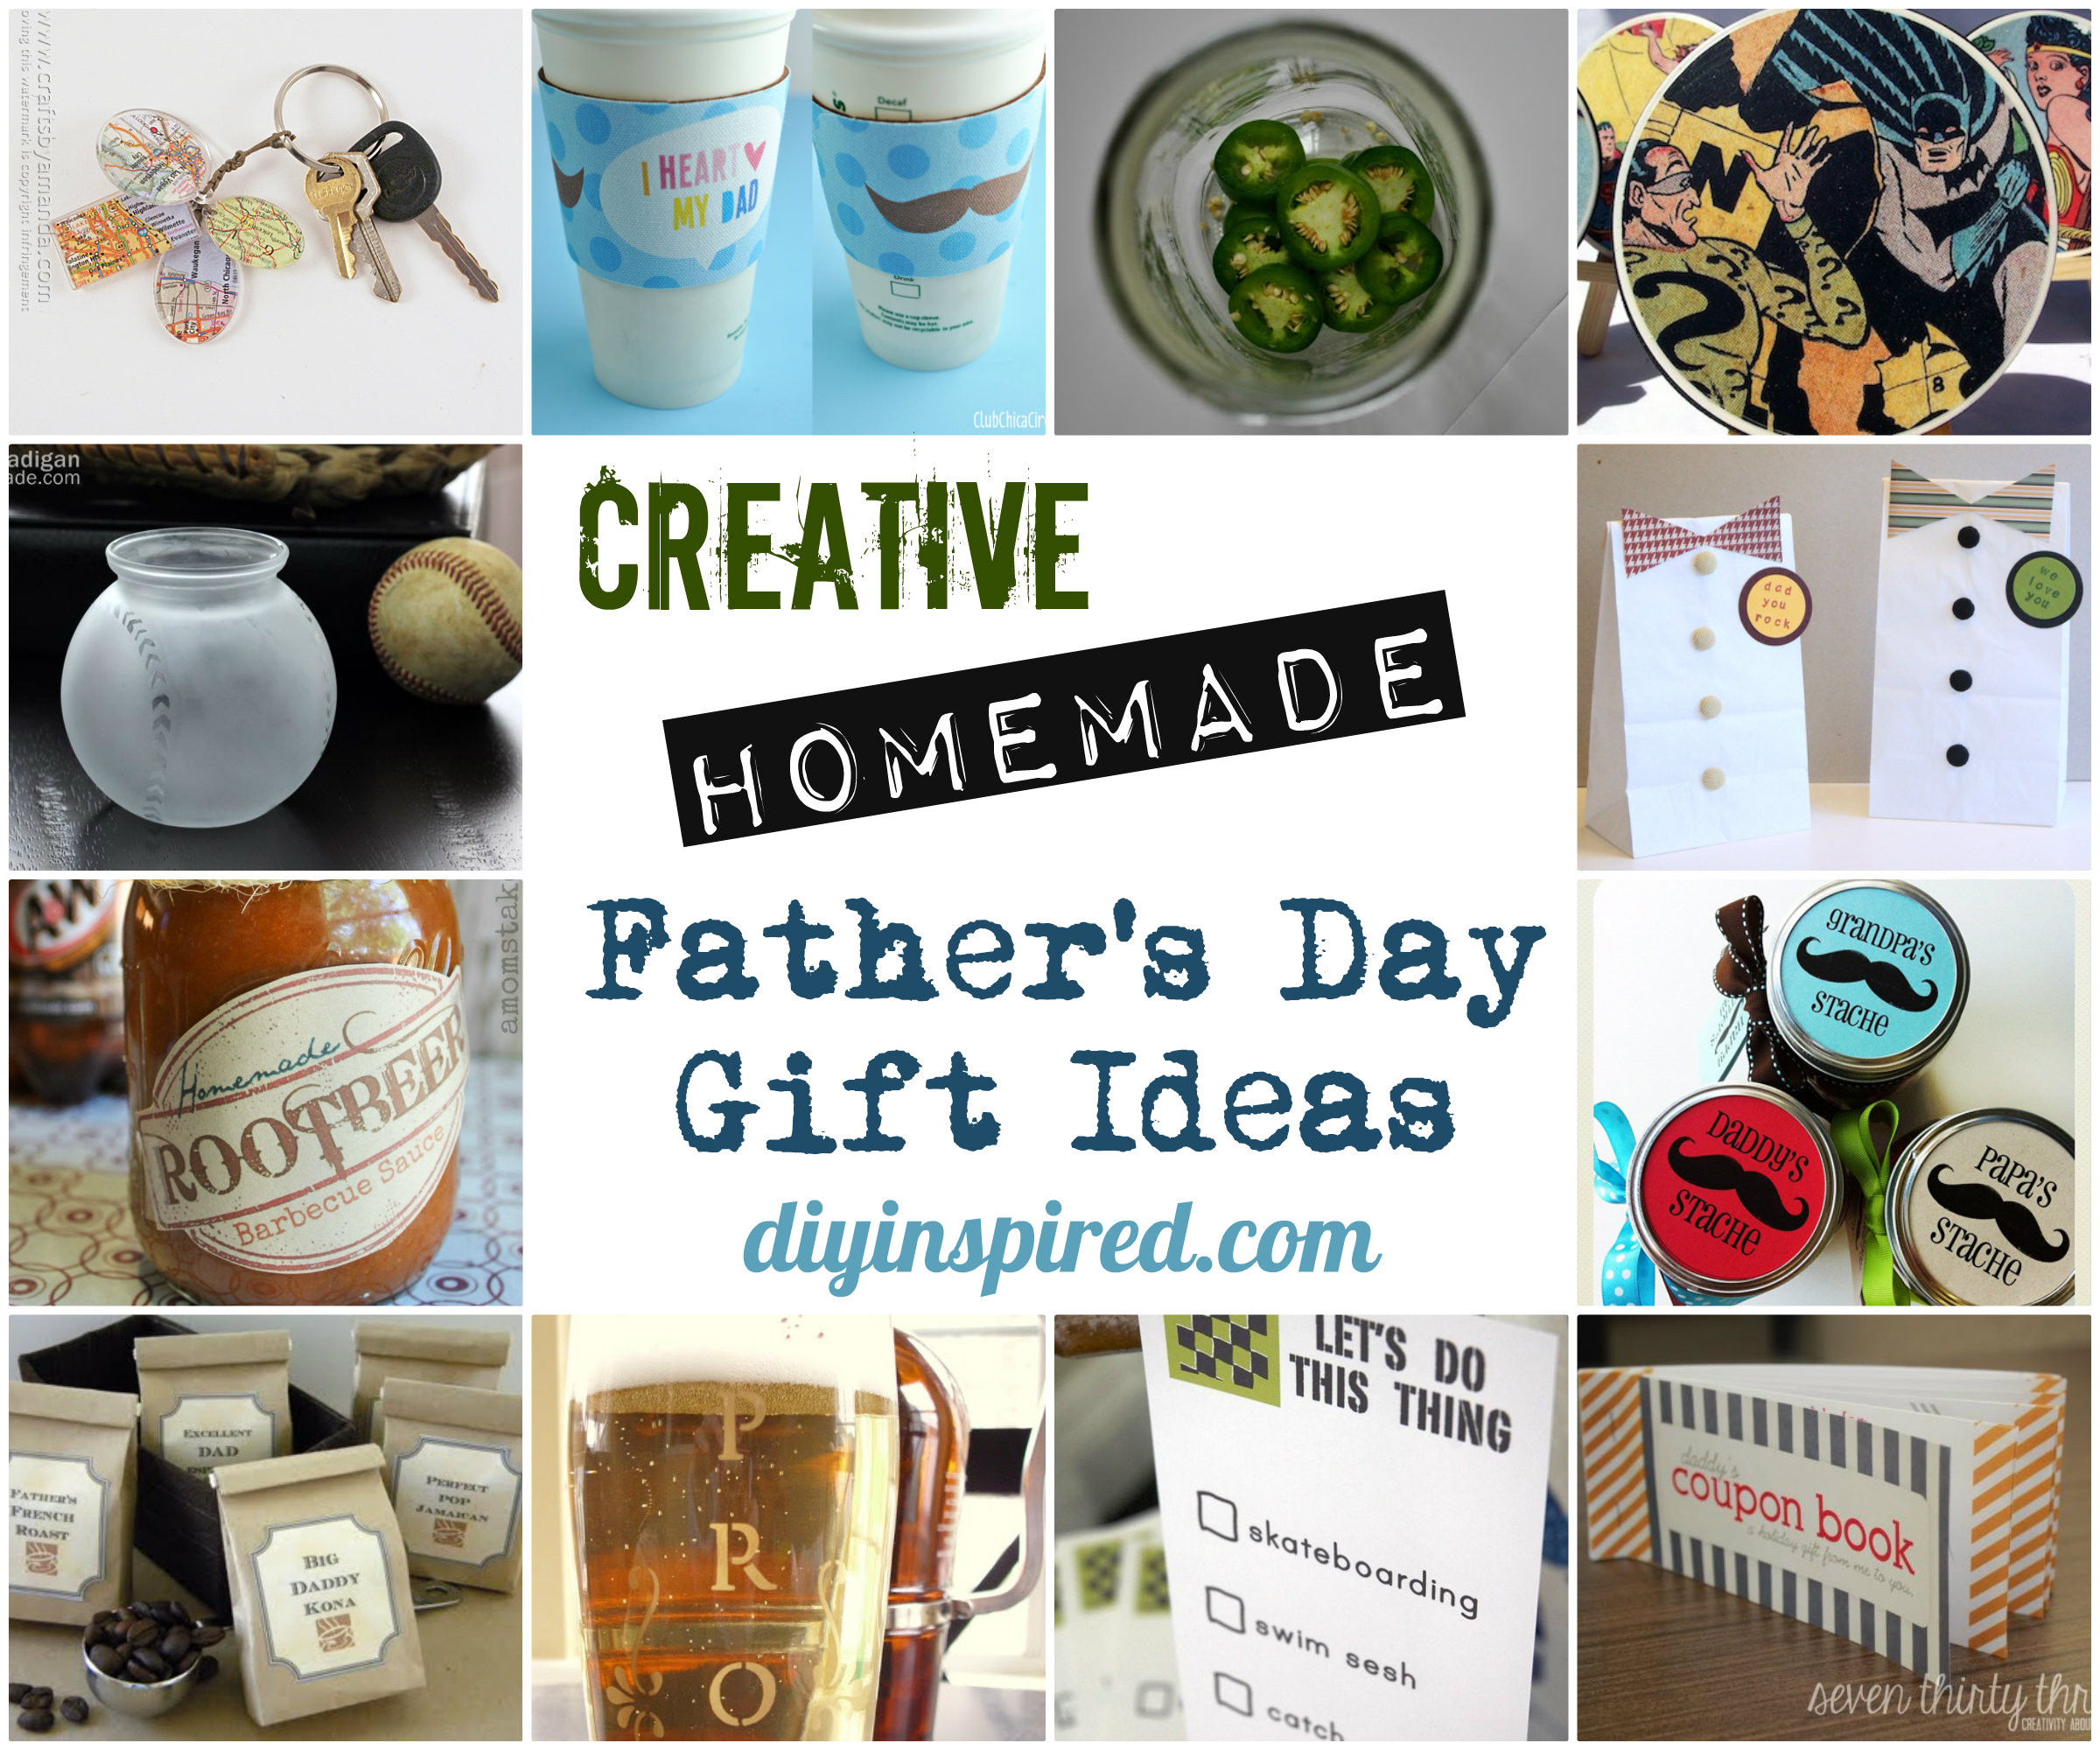 Best ideas about Fathers Day DIY Gifts . Save or Pin Creative Homemade Father's Day Gift Ideas DIY Inspired Now.